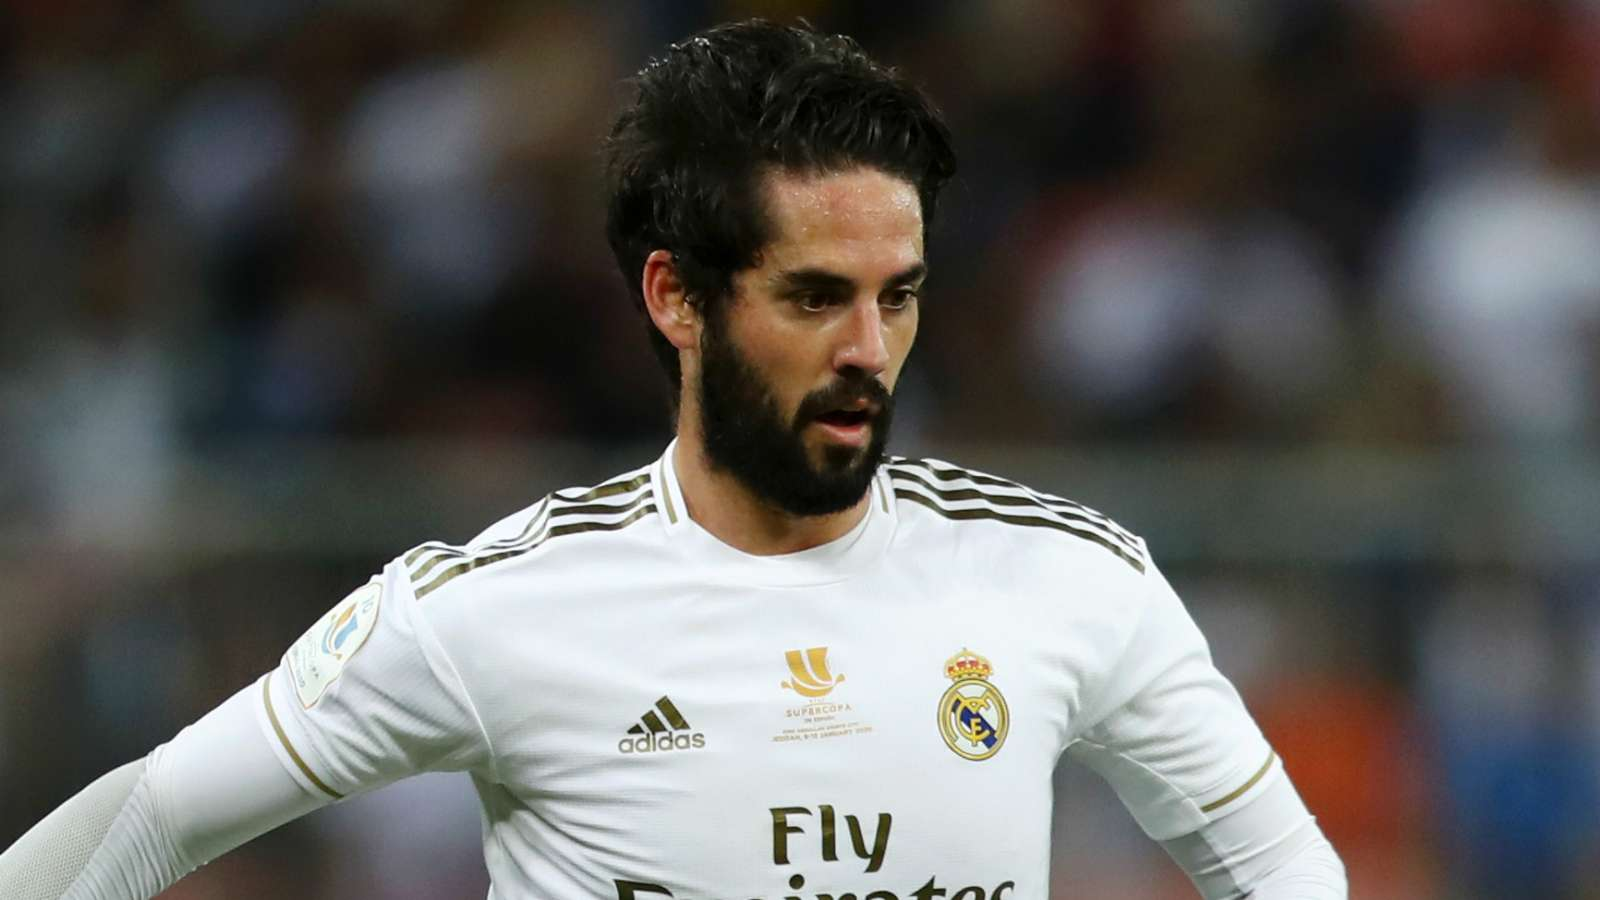 Isco Real Madrid 2019-20